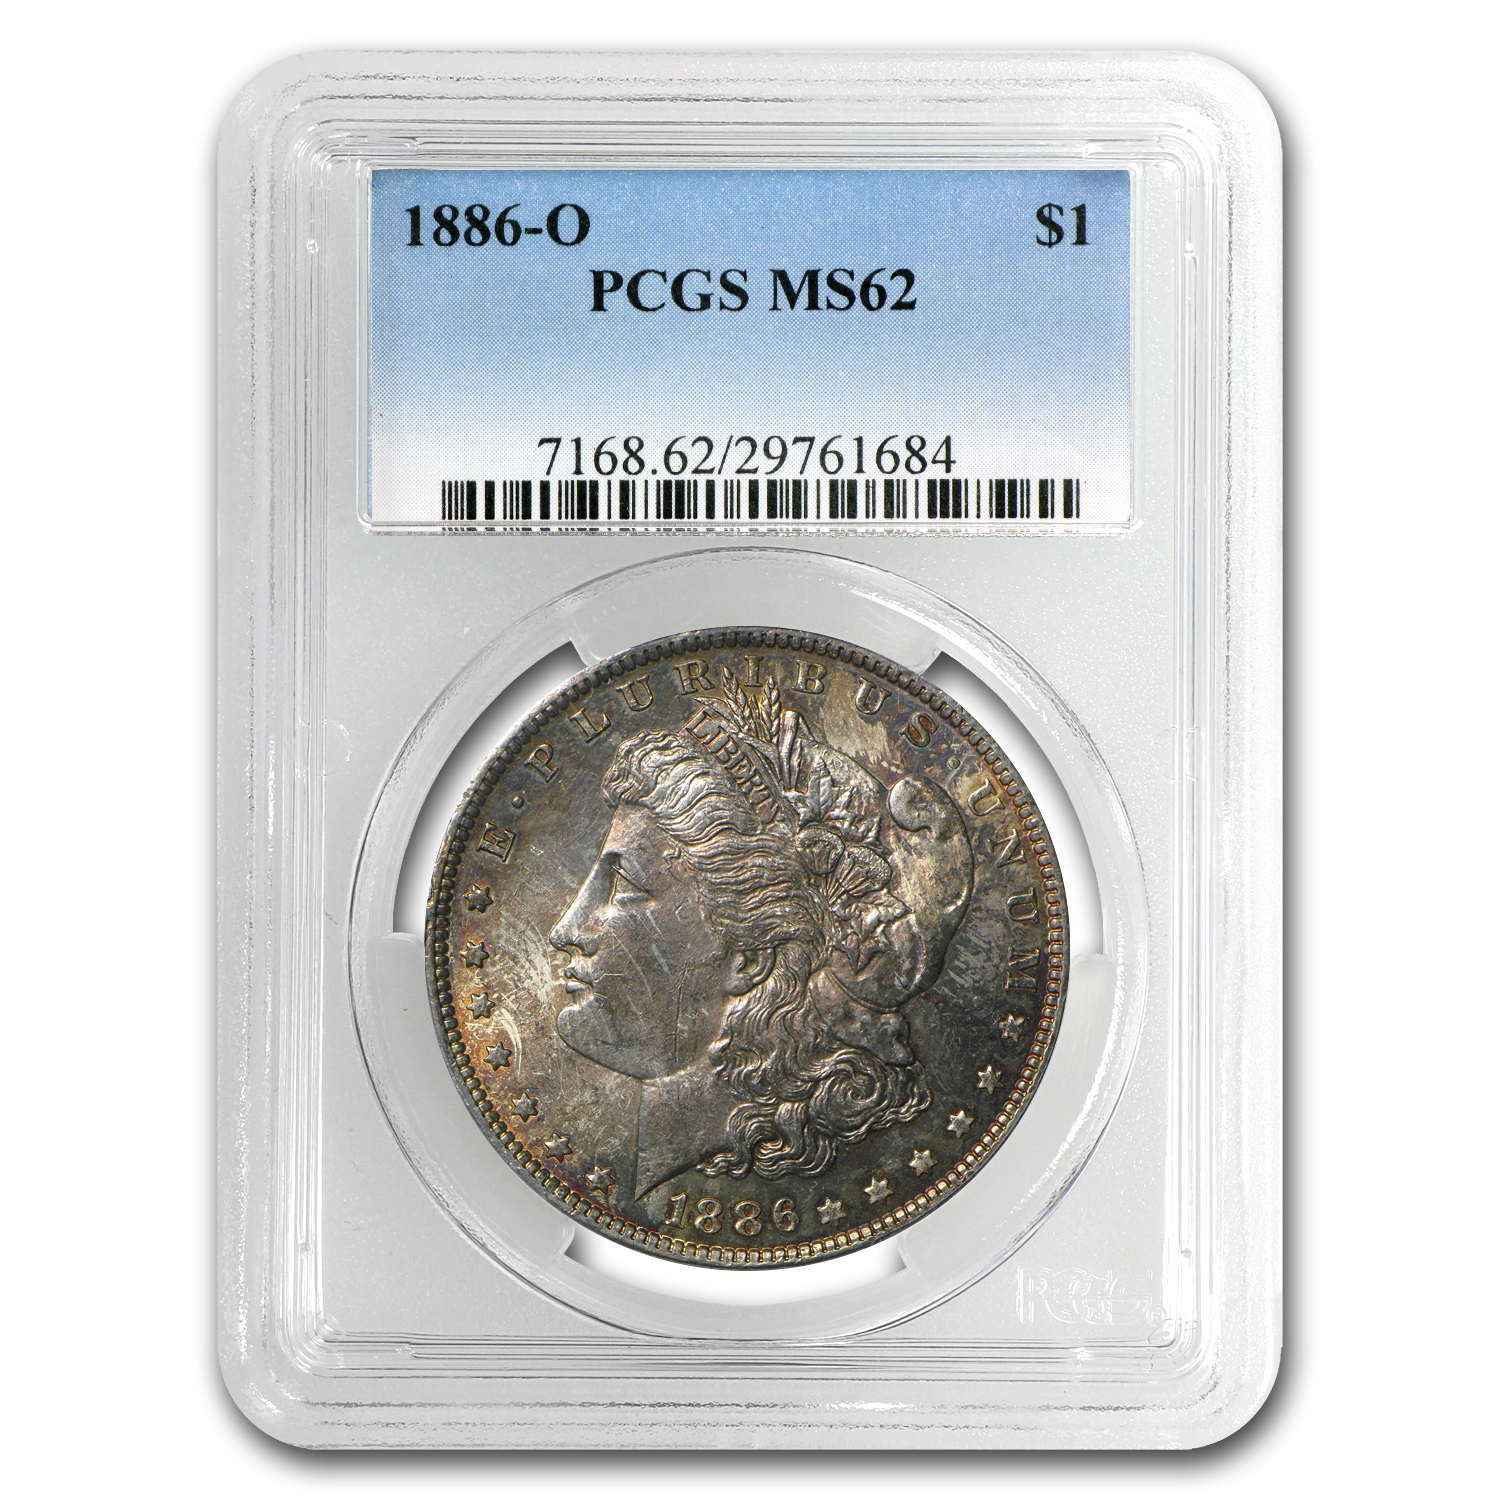 1886-O Morgan Dollar MS-62 PCGS - Pink Obverse Toning